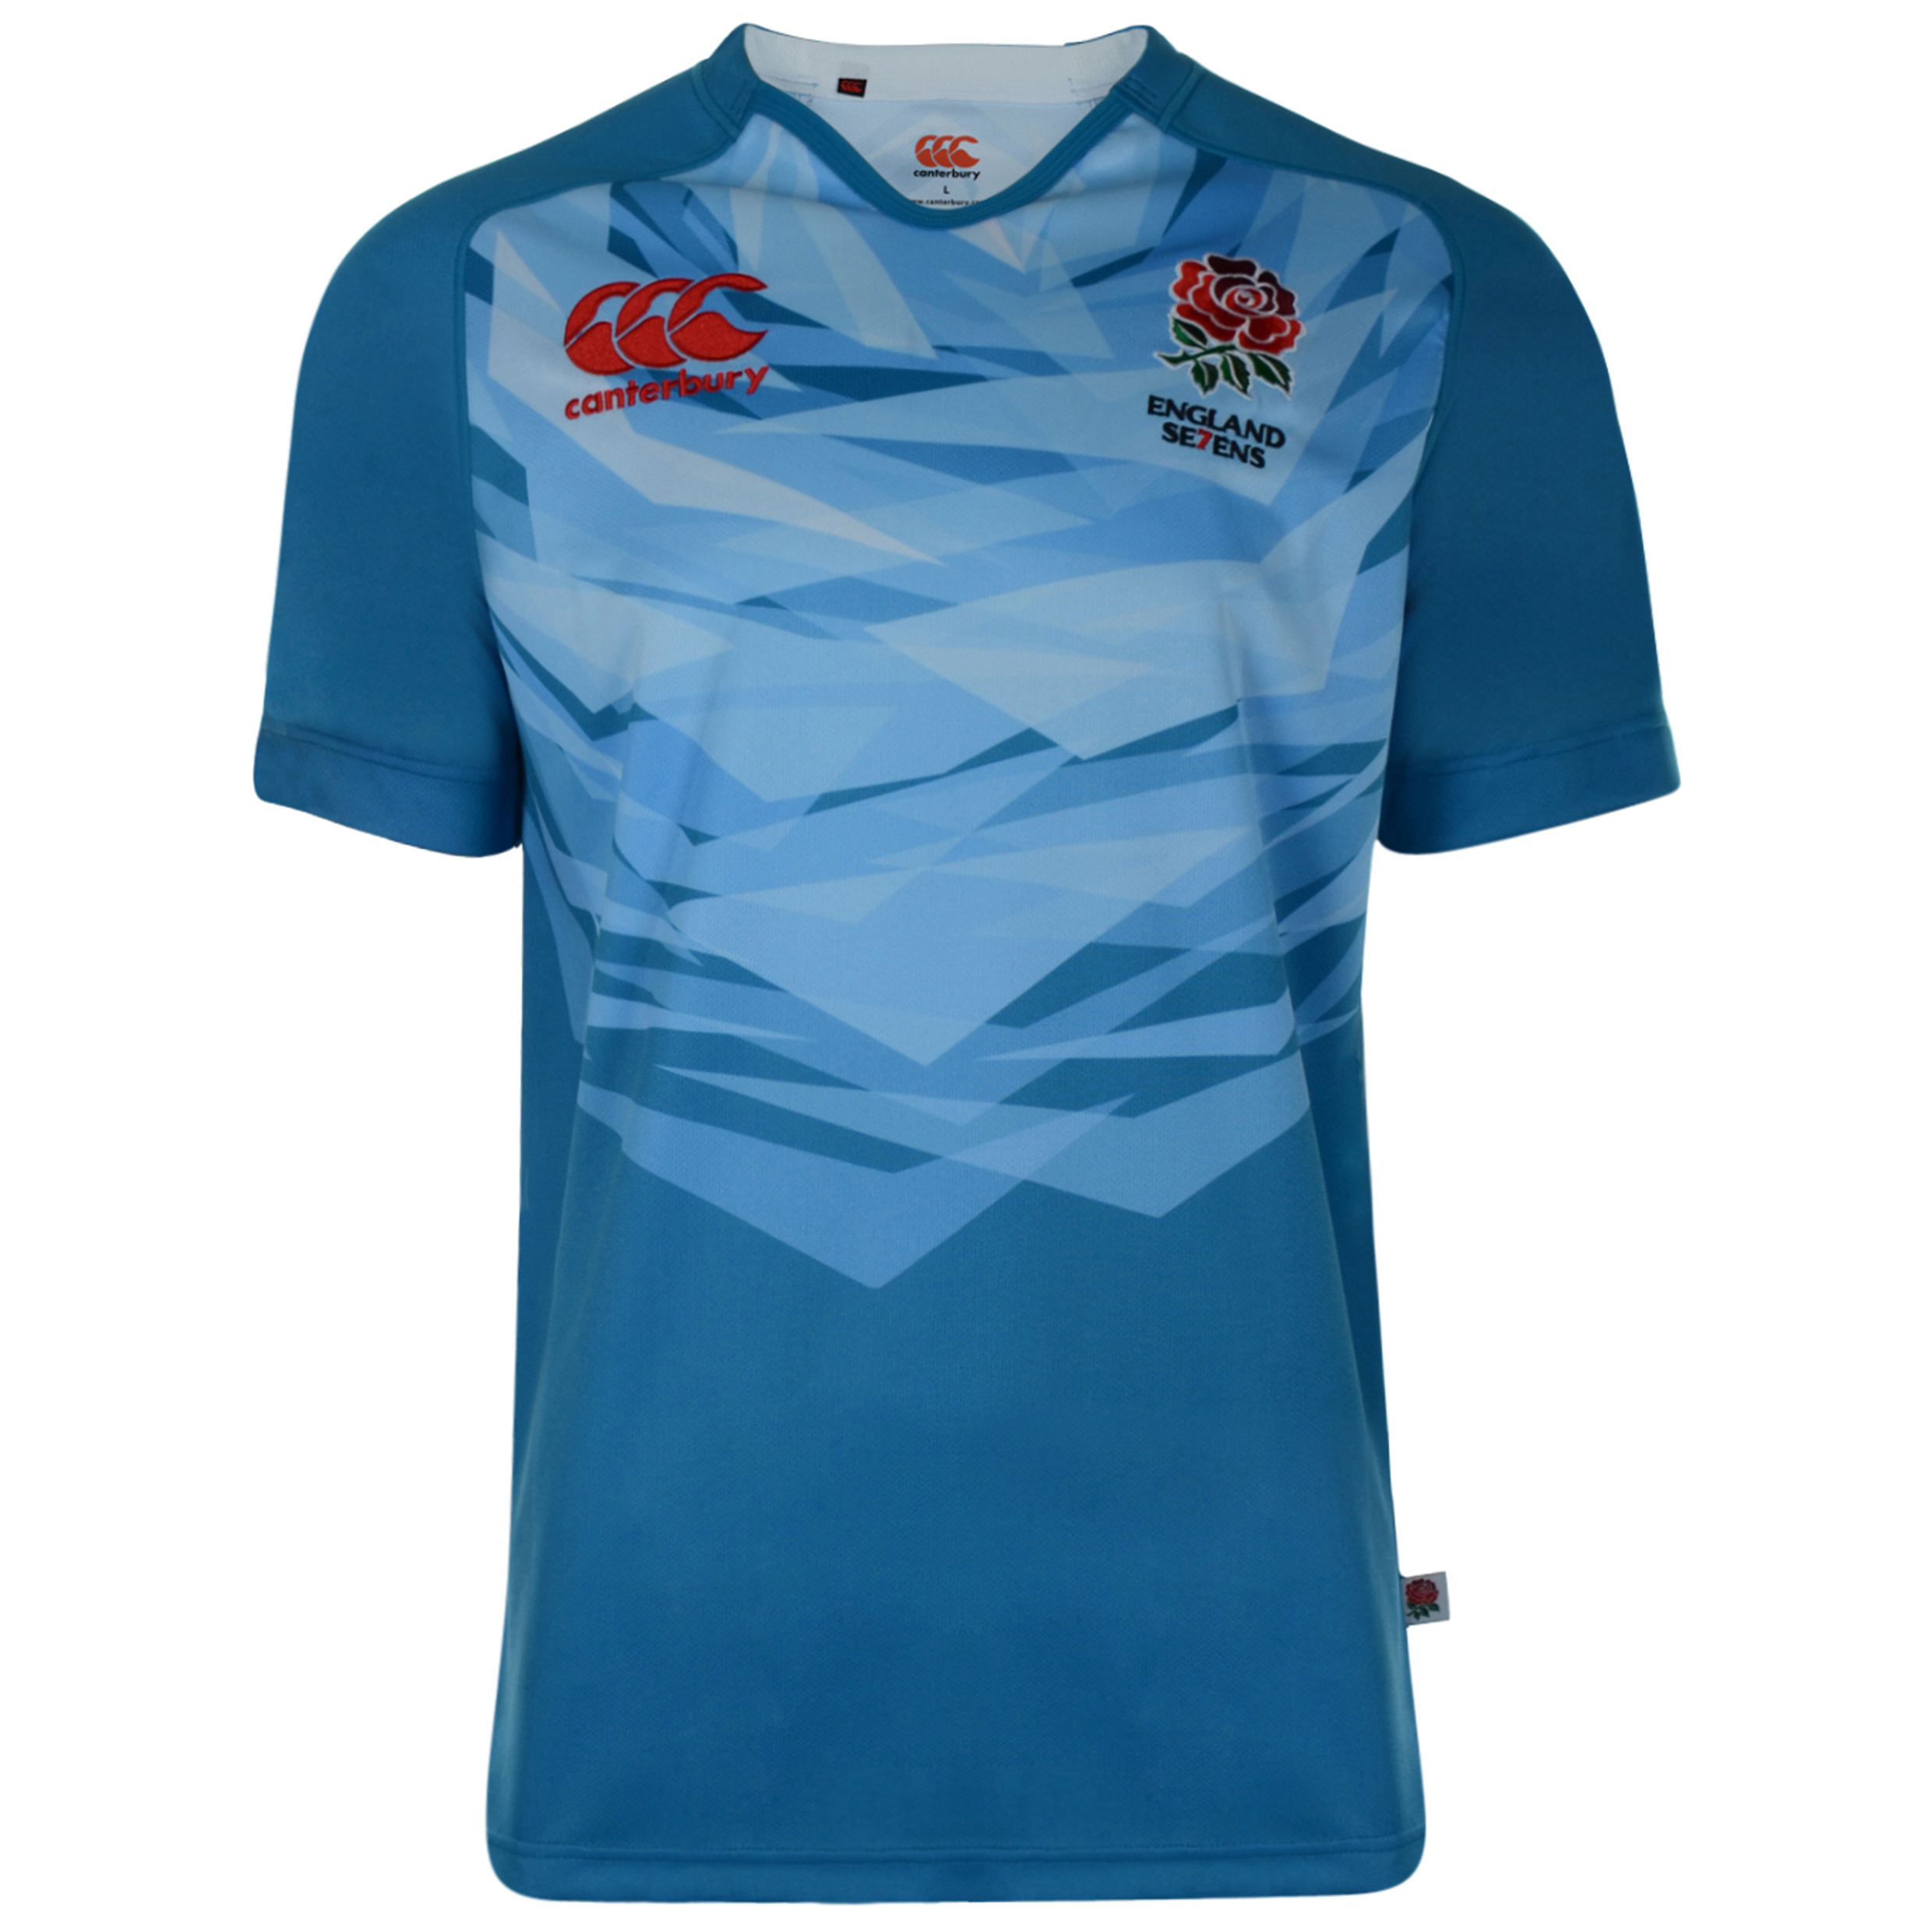 England Alternate 7inchS Rugby Pro Shirt 2012/13 S/S - Kids